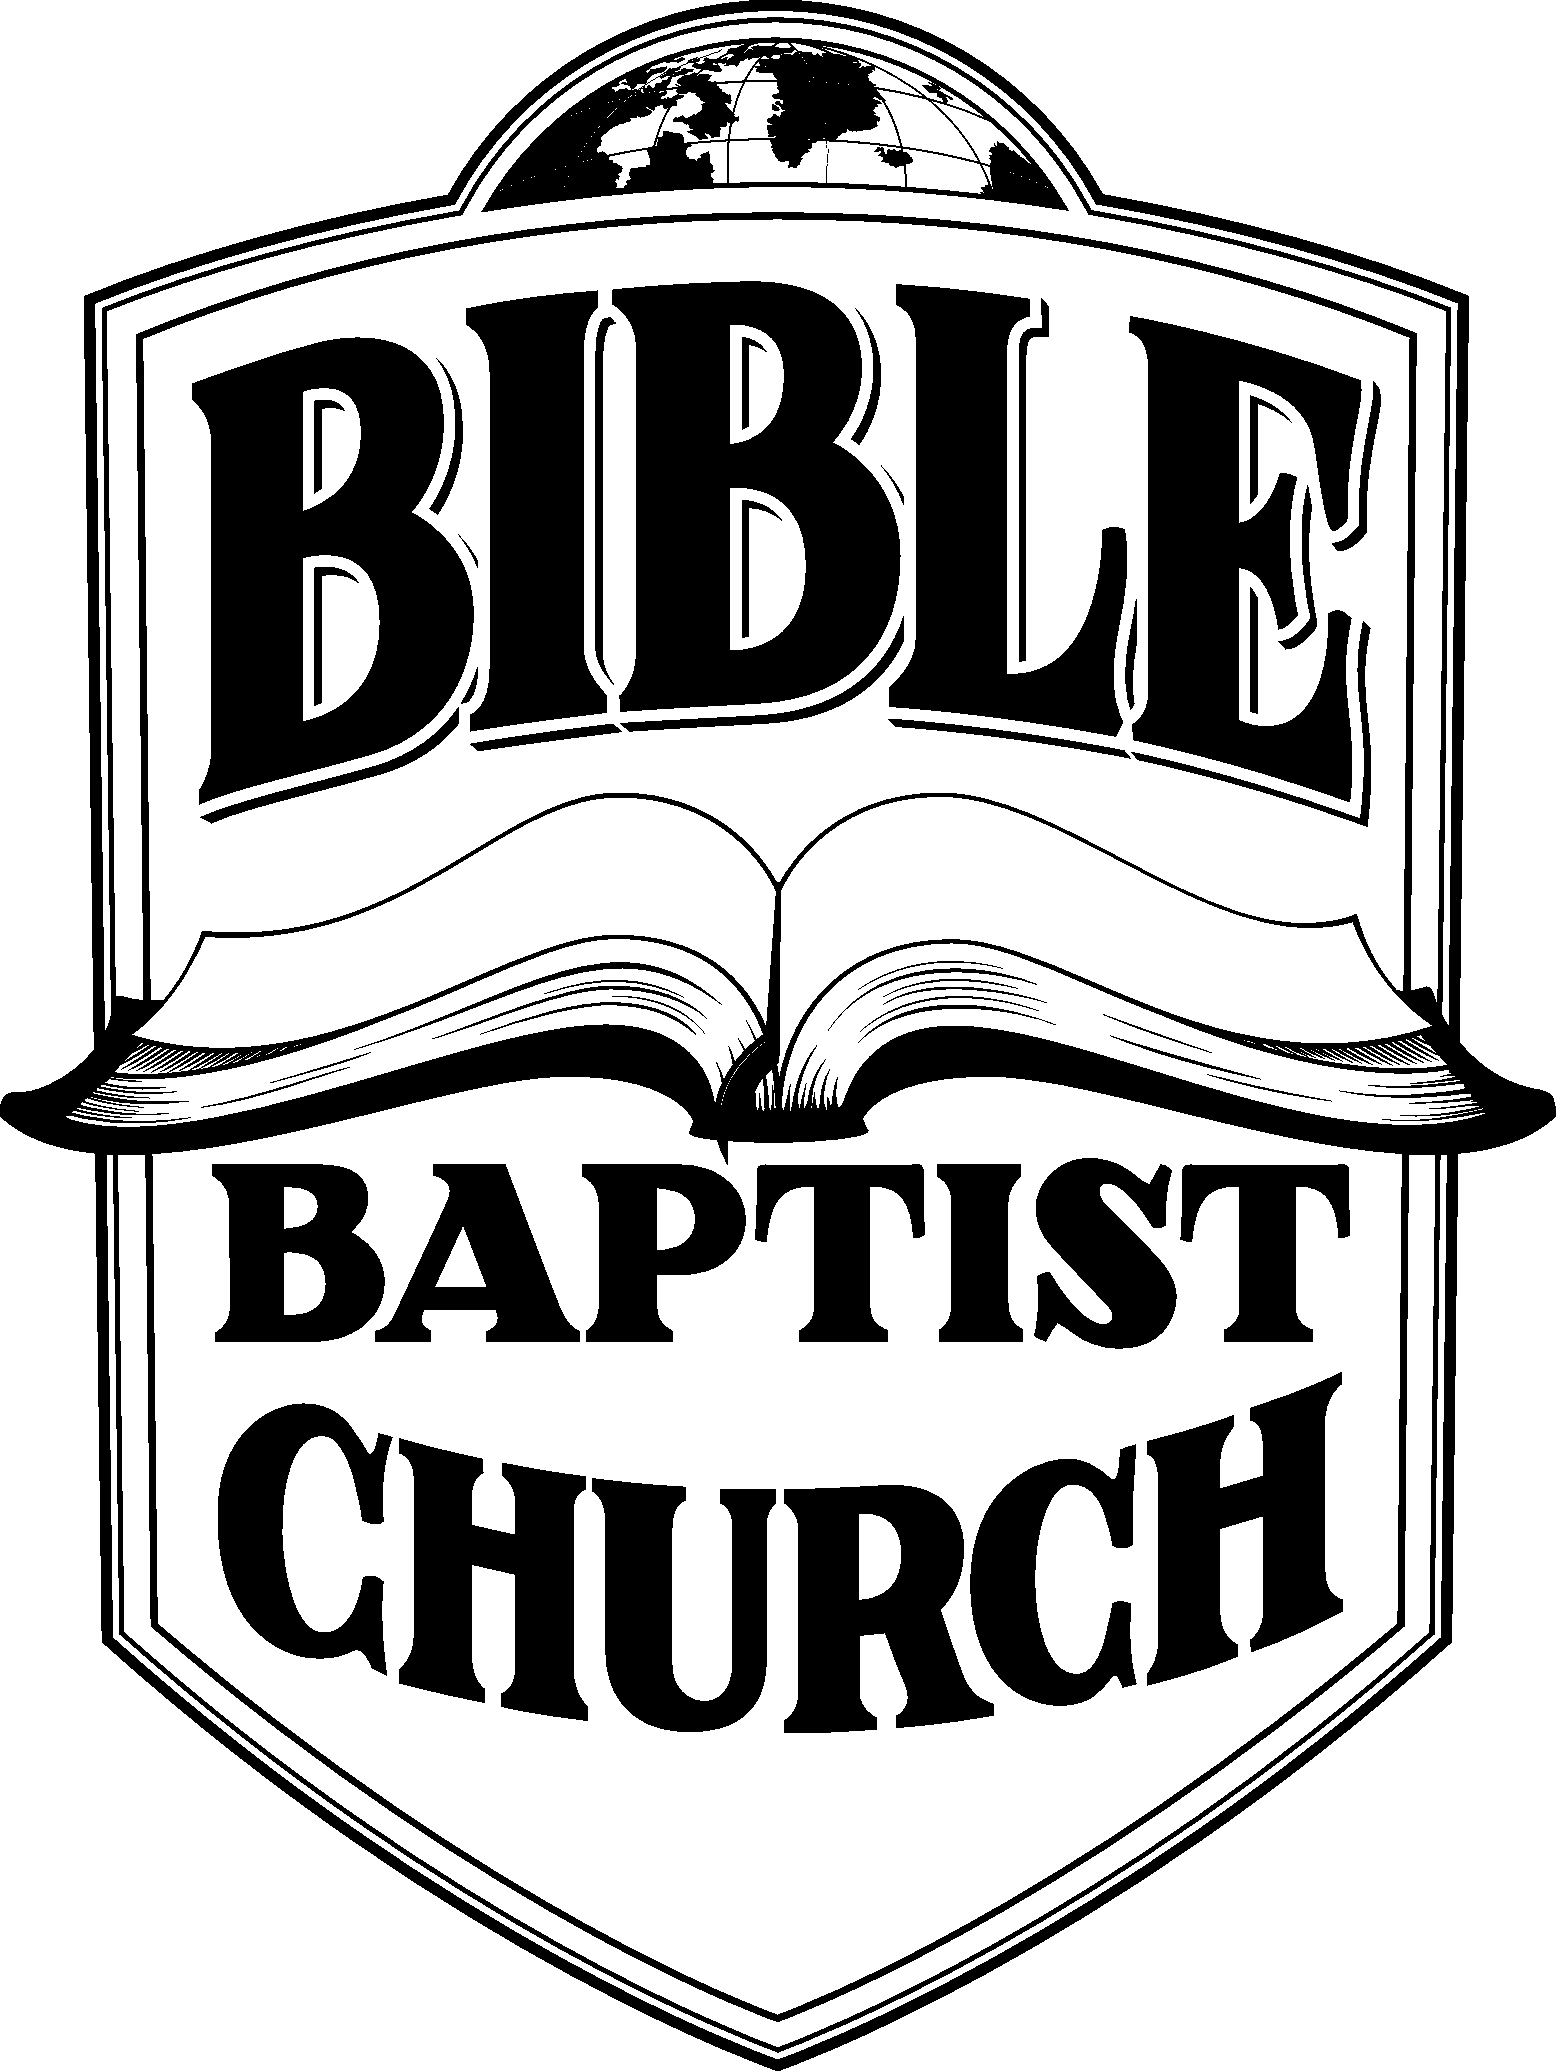 Bible Baptist Church A Gospel Preaching church located in New Egypt